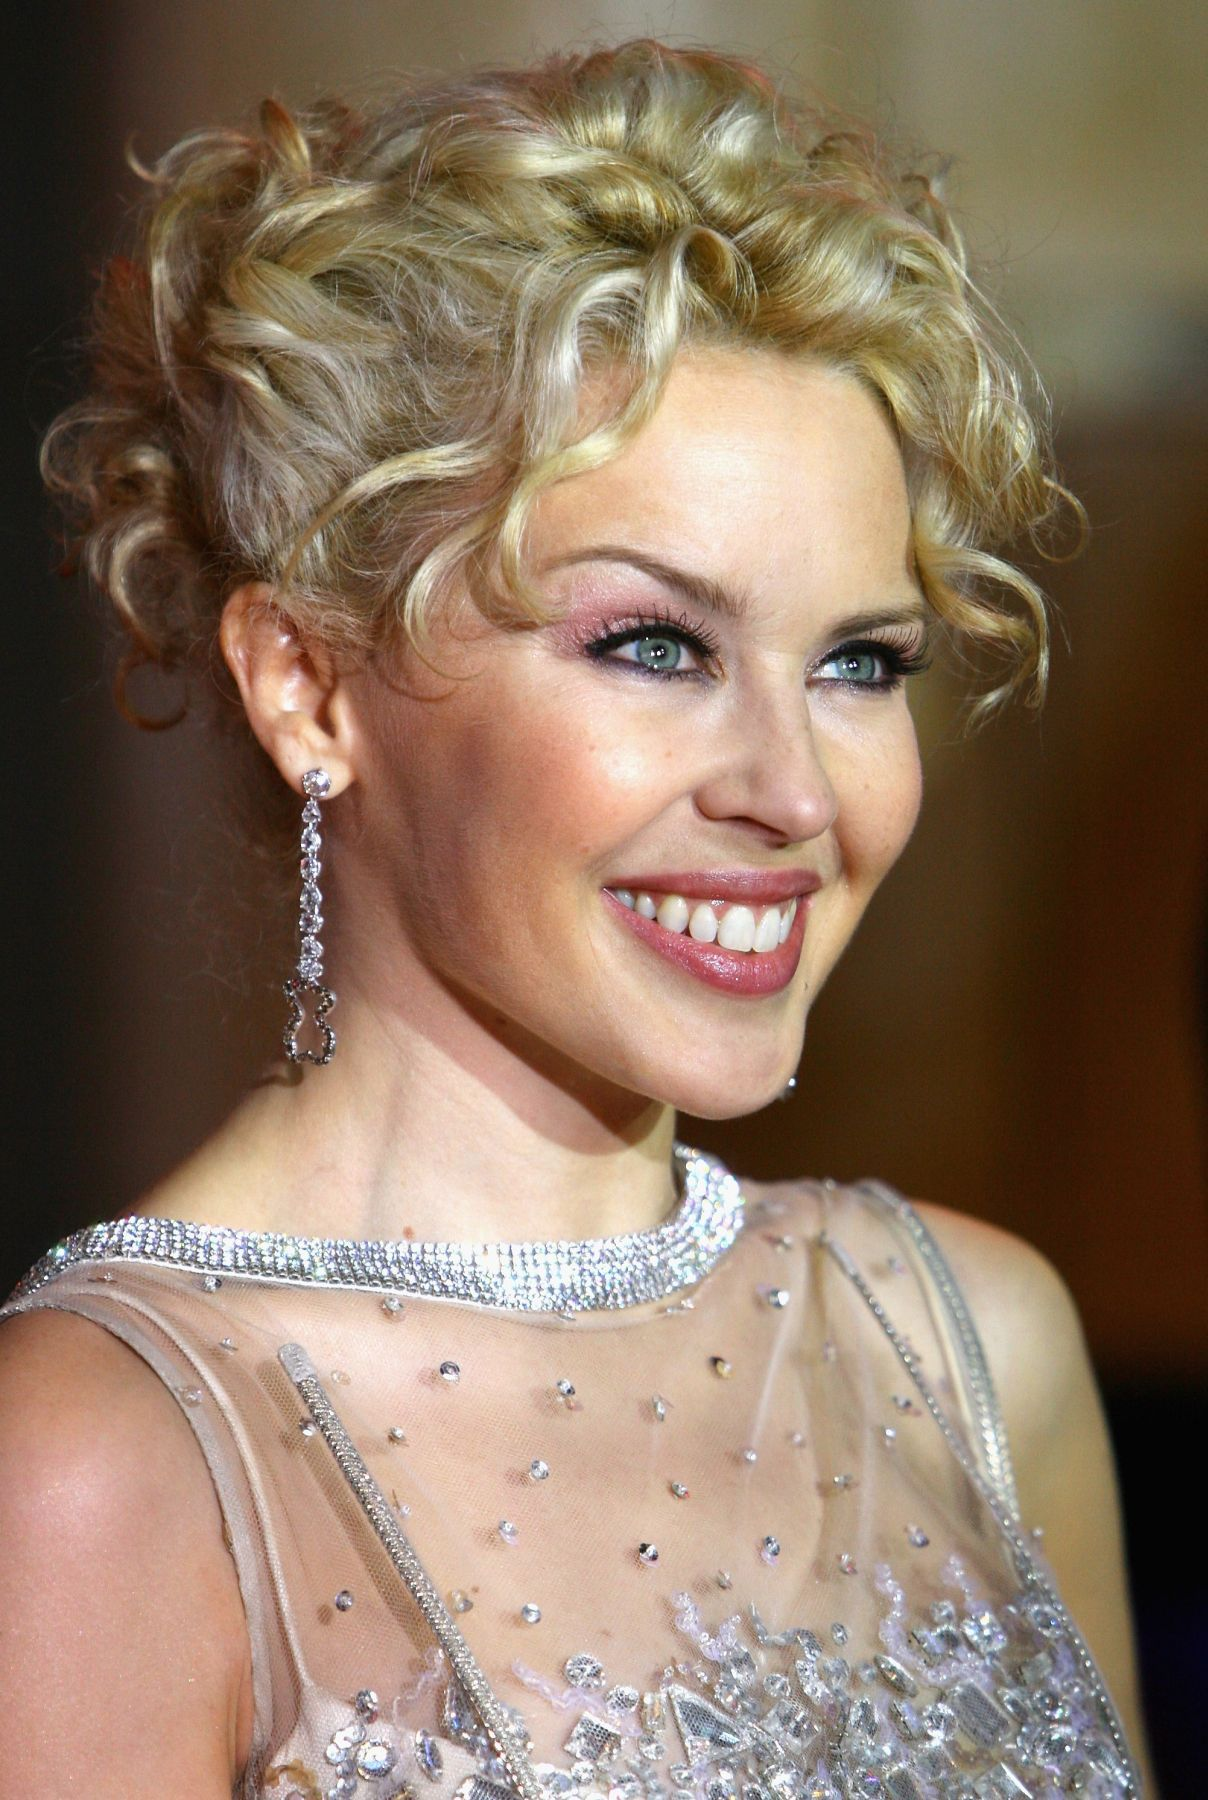 Kylie Minogue picture, photo, image 11.